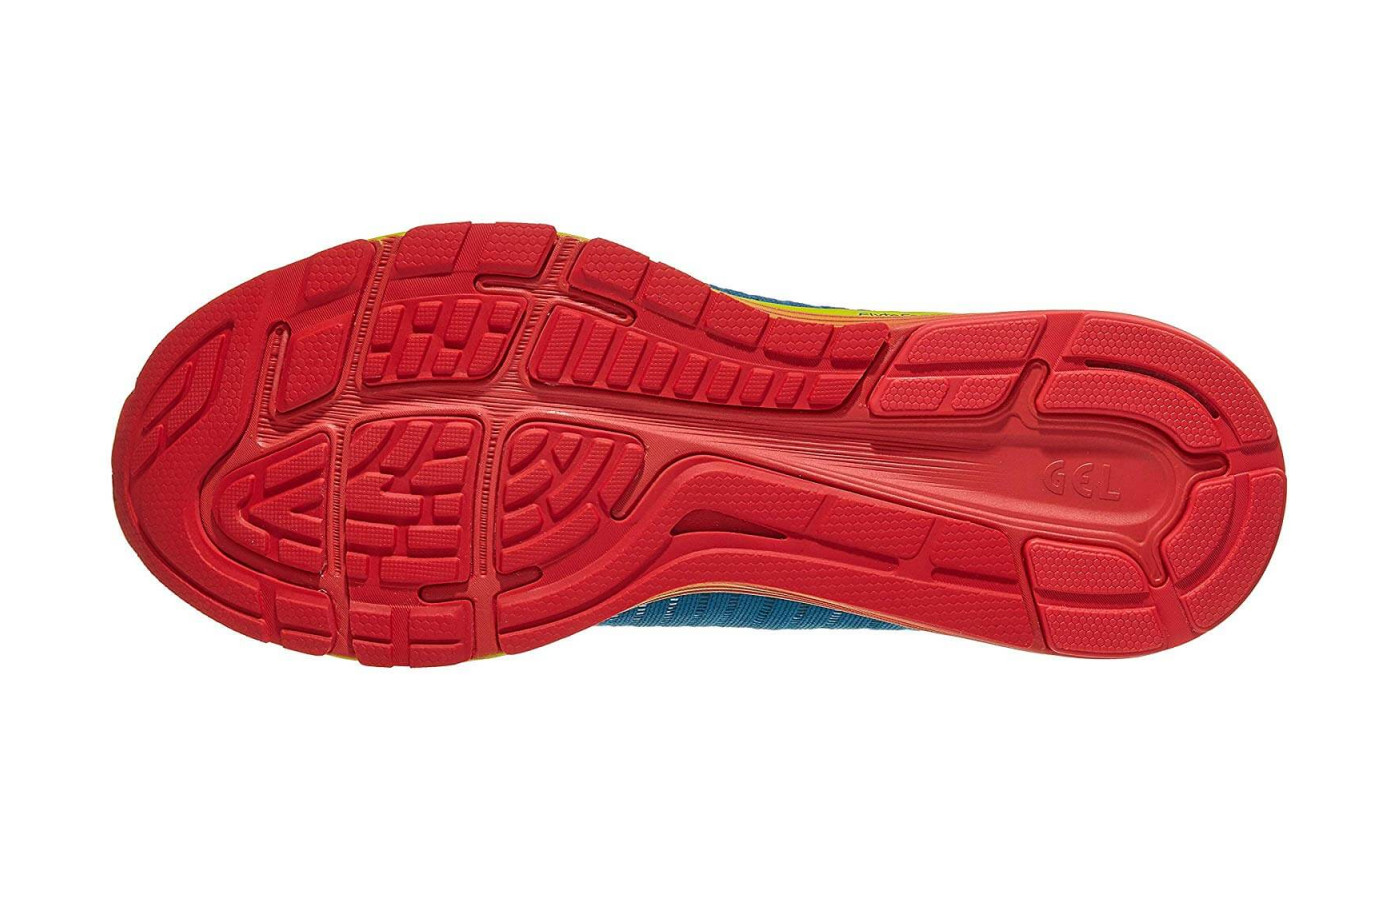 AHAR comprises the Dynaflyte 3's outsole